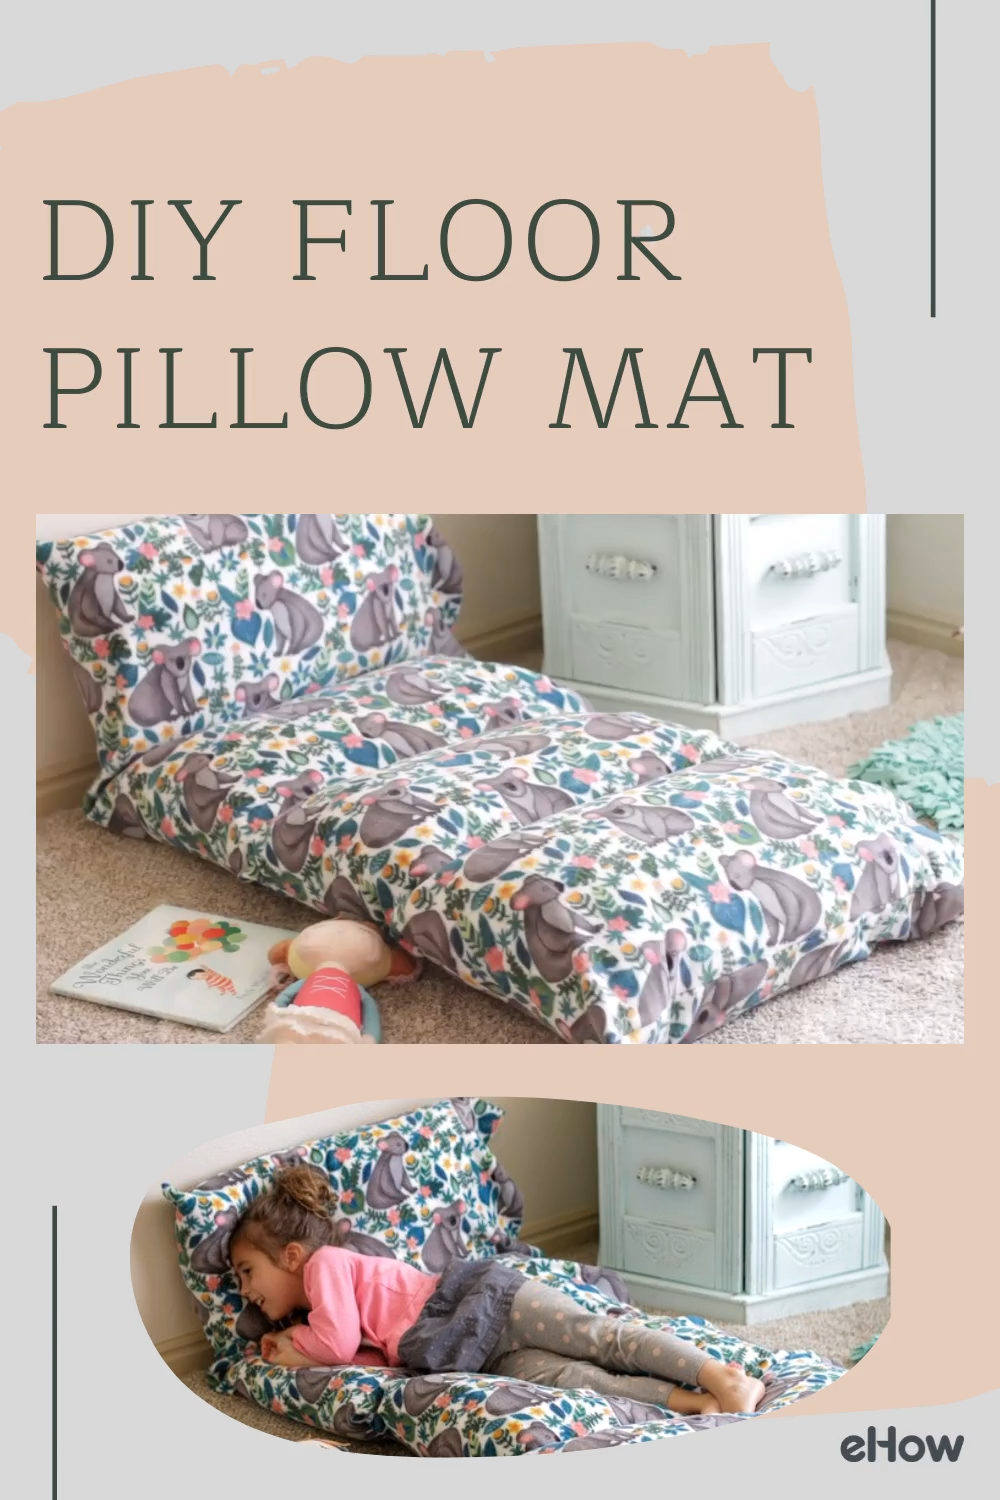 Whether watching a favorite movie, reading a good book or just relaxing next to a warm fire, this floor pillow mat will keep you cozy and comfy. Bring it along when you're camping, take it on sleepovers or wherever an extra bed or mattress is needed. It just takes a couple of yards of soft fleece and four standard sized pillows to make one of these snug cushions. Just a word of warning though — if you have kids, you'll need to make more than just one.